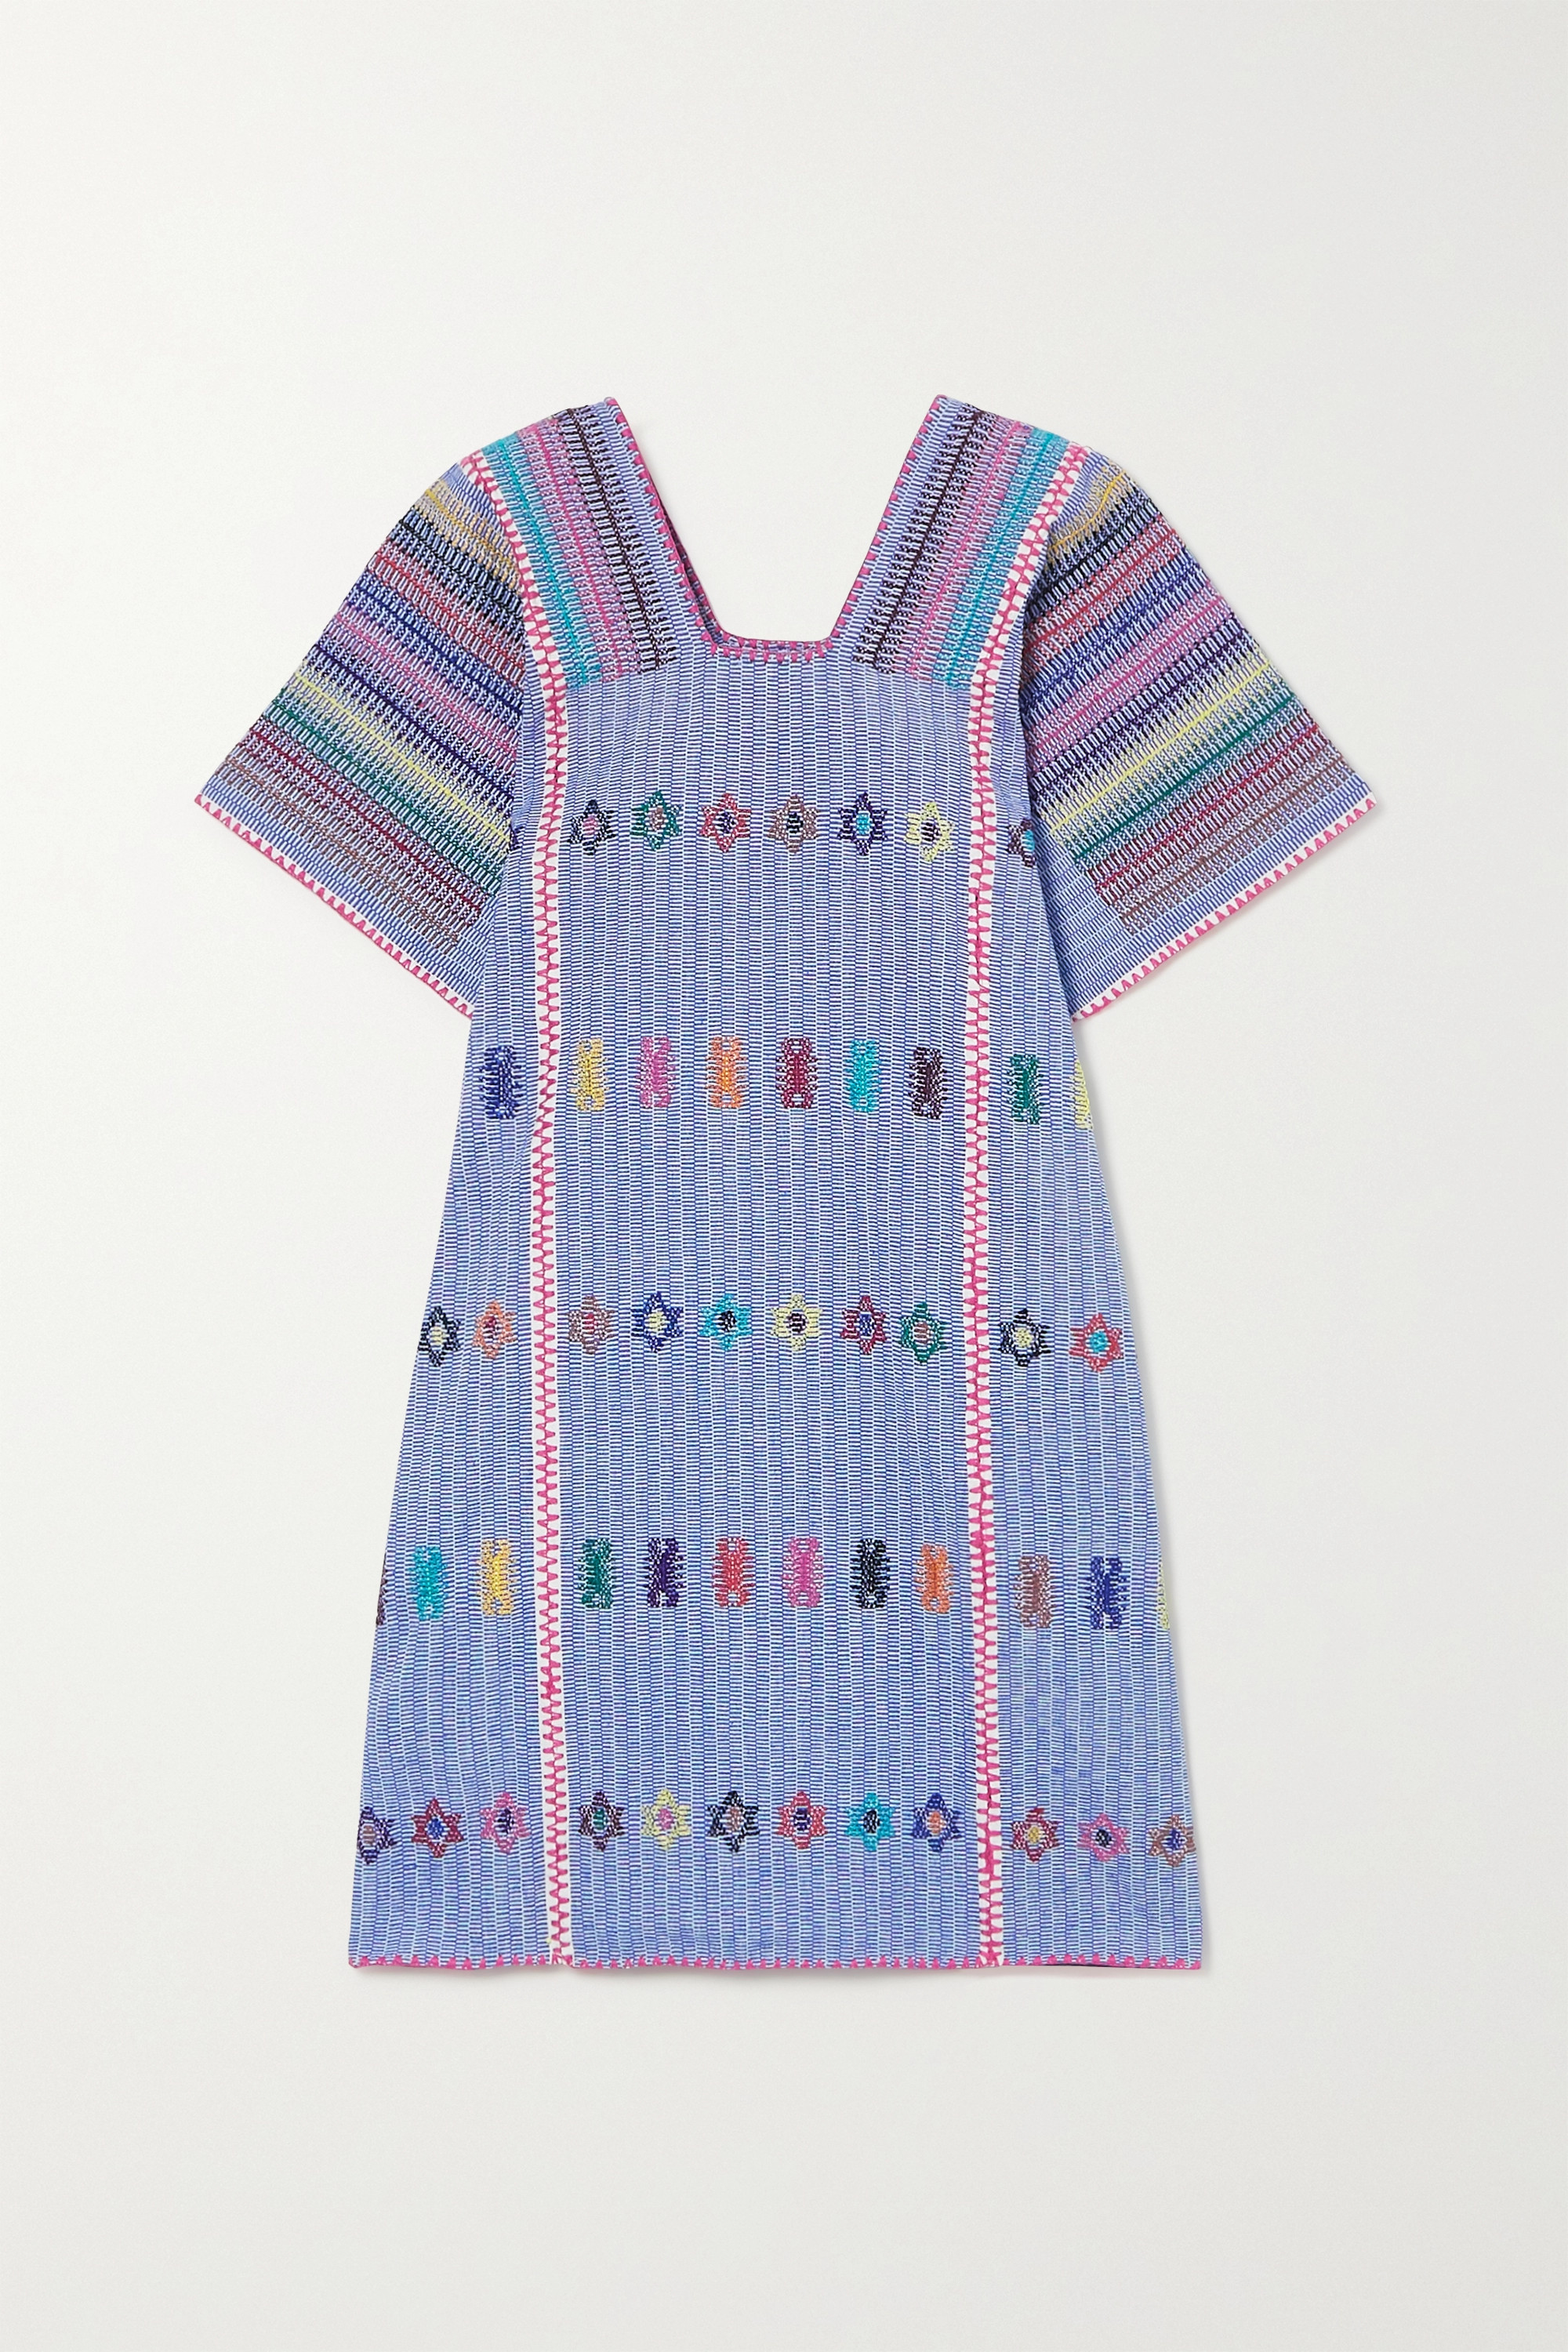 Pippa Holt Embroidered striped cotton huipil